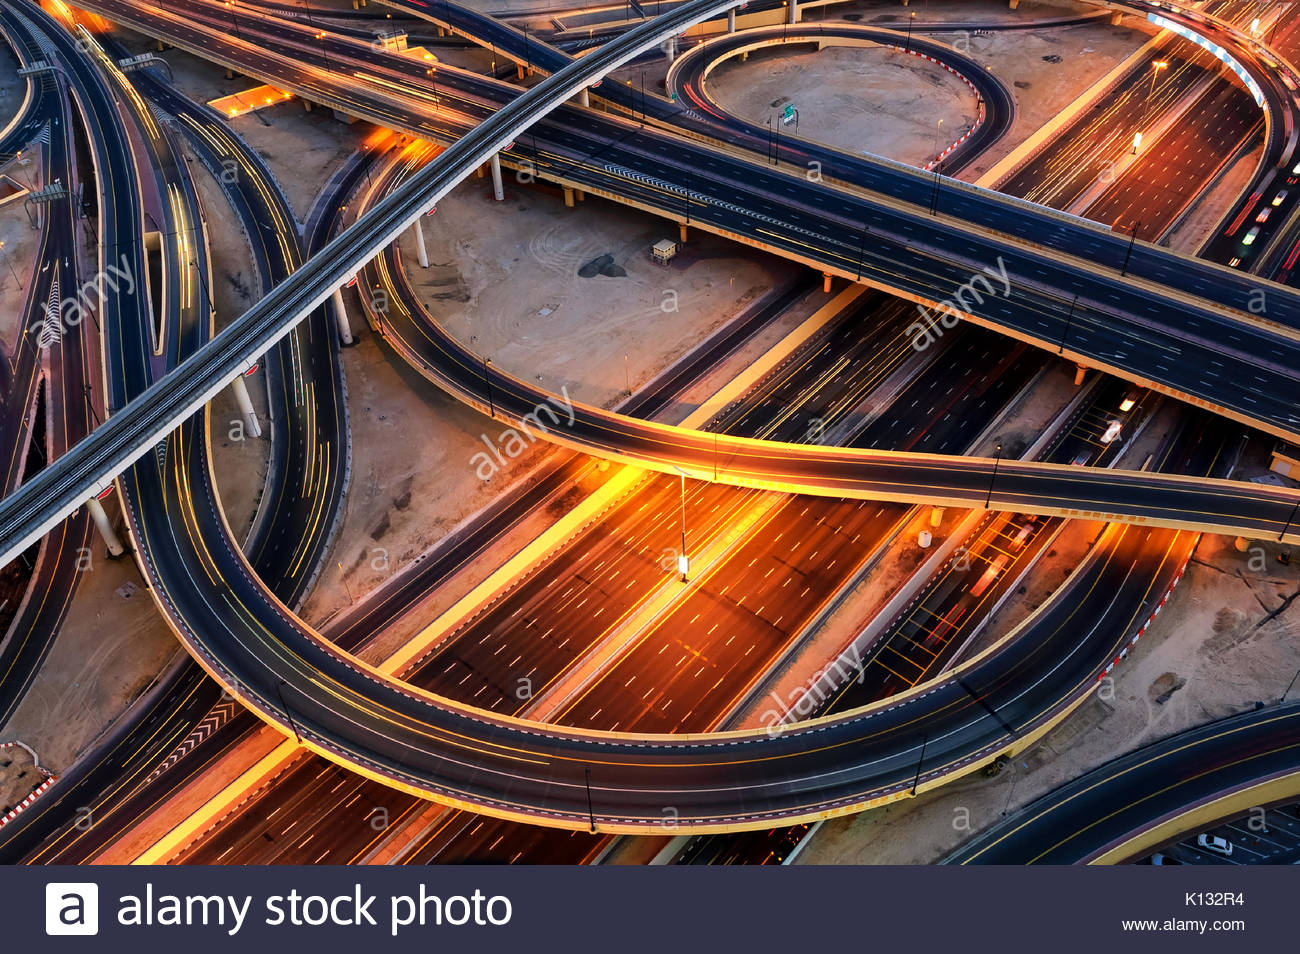 Extraordinary thoroughfare leading to Abu Dhabi during night rush hour near biggest skyscrapers. Traffic jam with - Stock Image